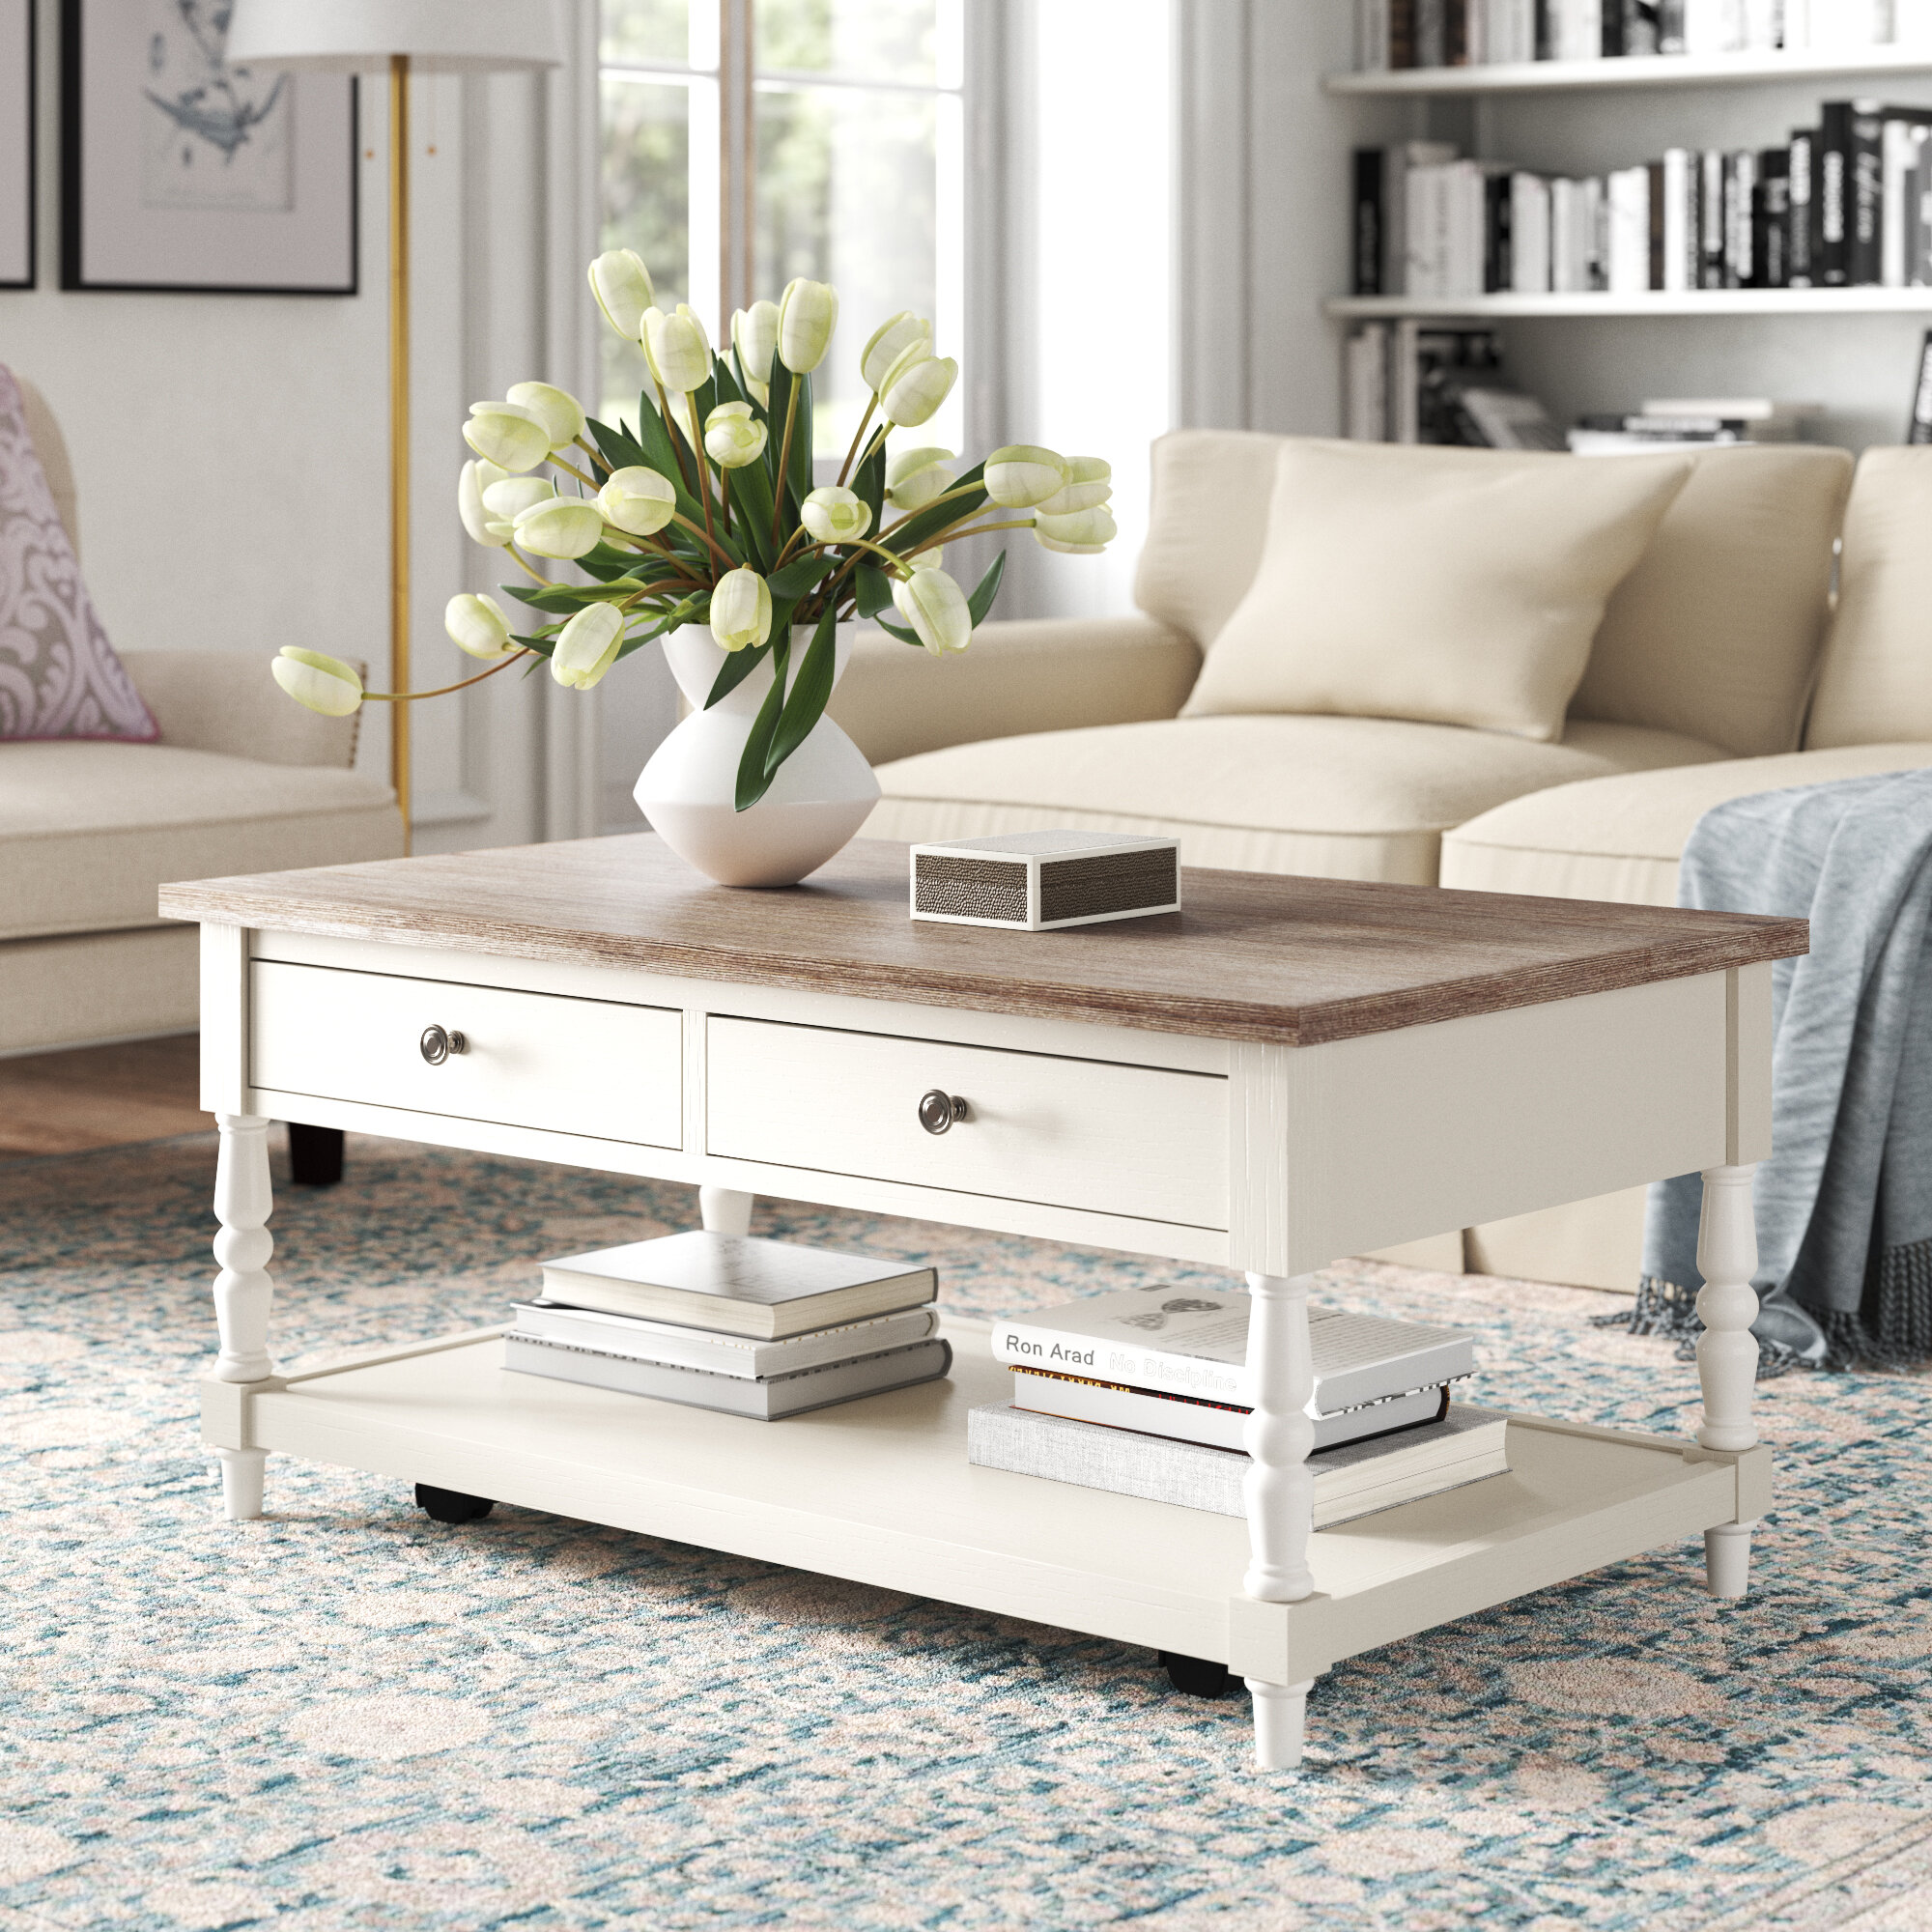 Kelly Clarkson Home Belfort Coffee Table With Storage Reviews Wayfair